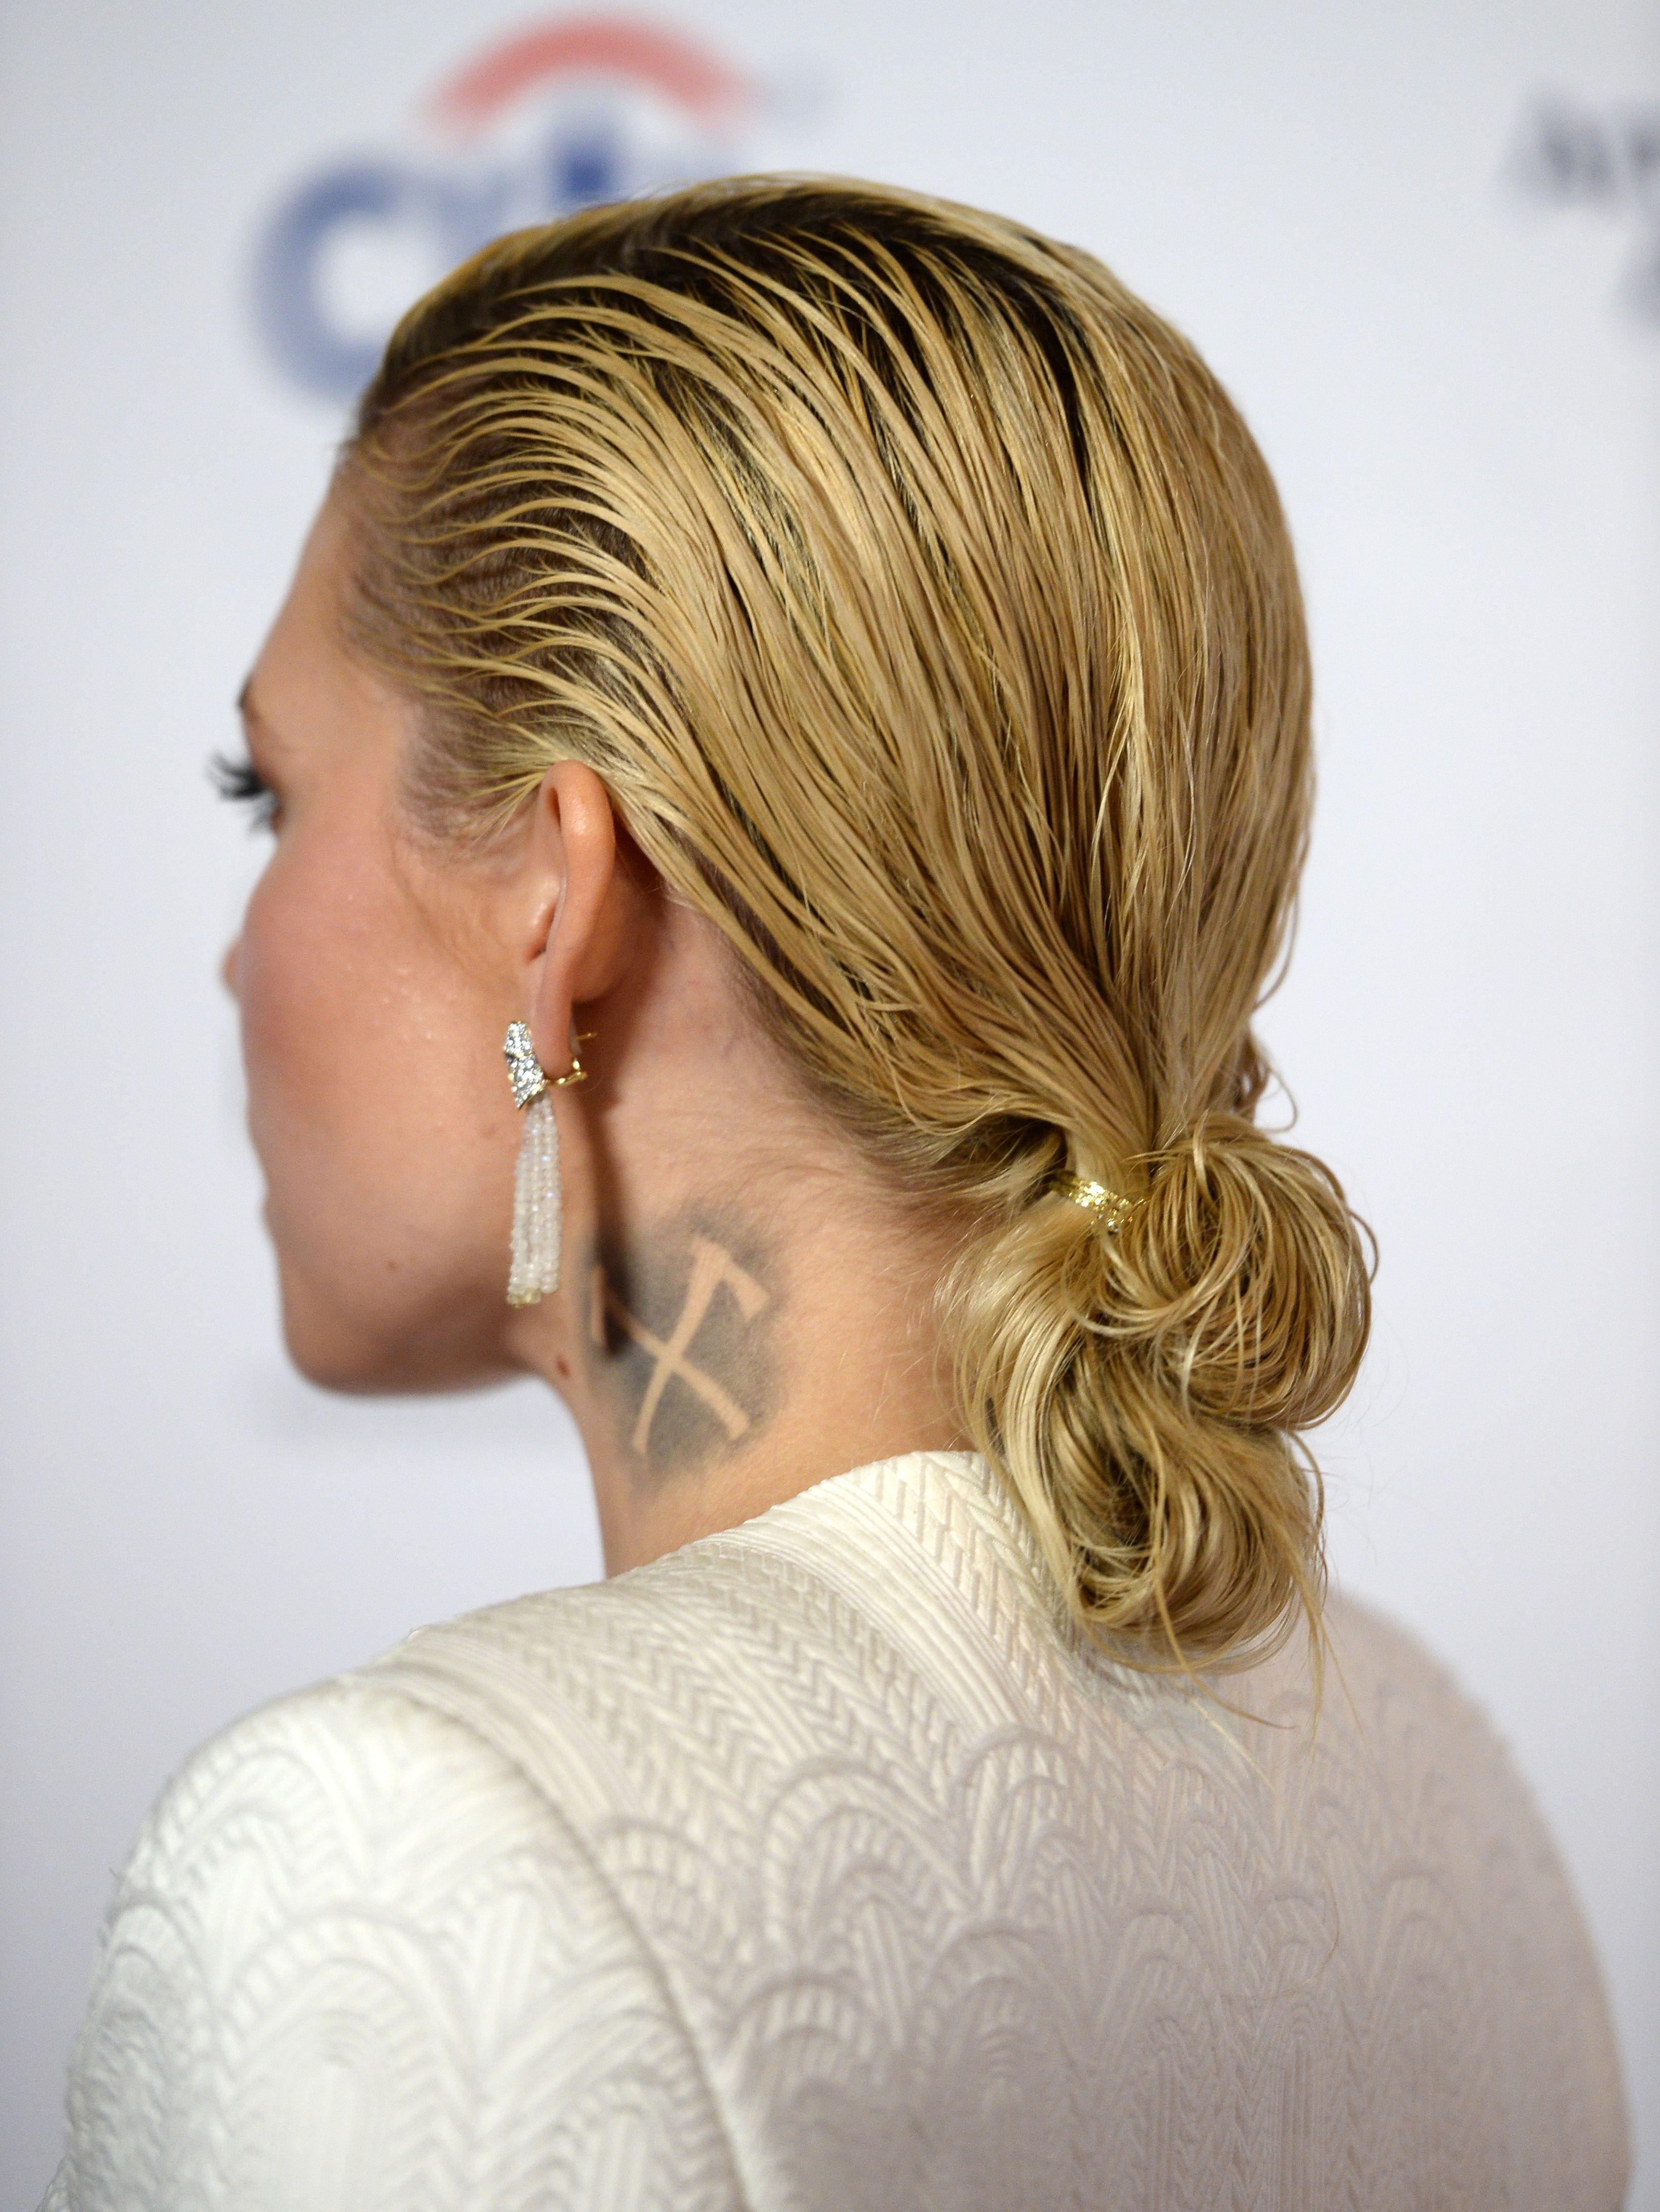 Hairstyles You Can Do with One Hair Tie , Easy Hair Ideas